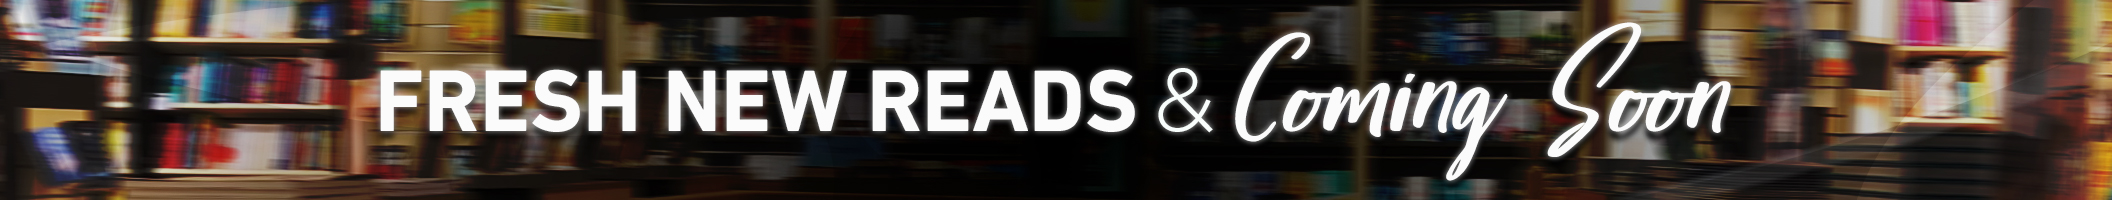 Fresh New Reads & Coming Soon Homepage Banner 2112x200